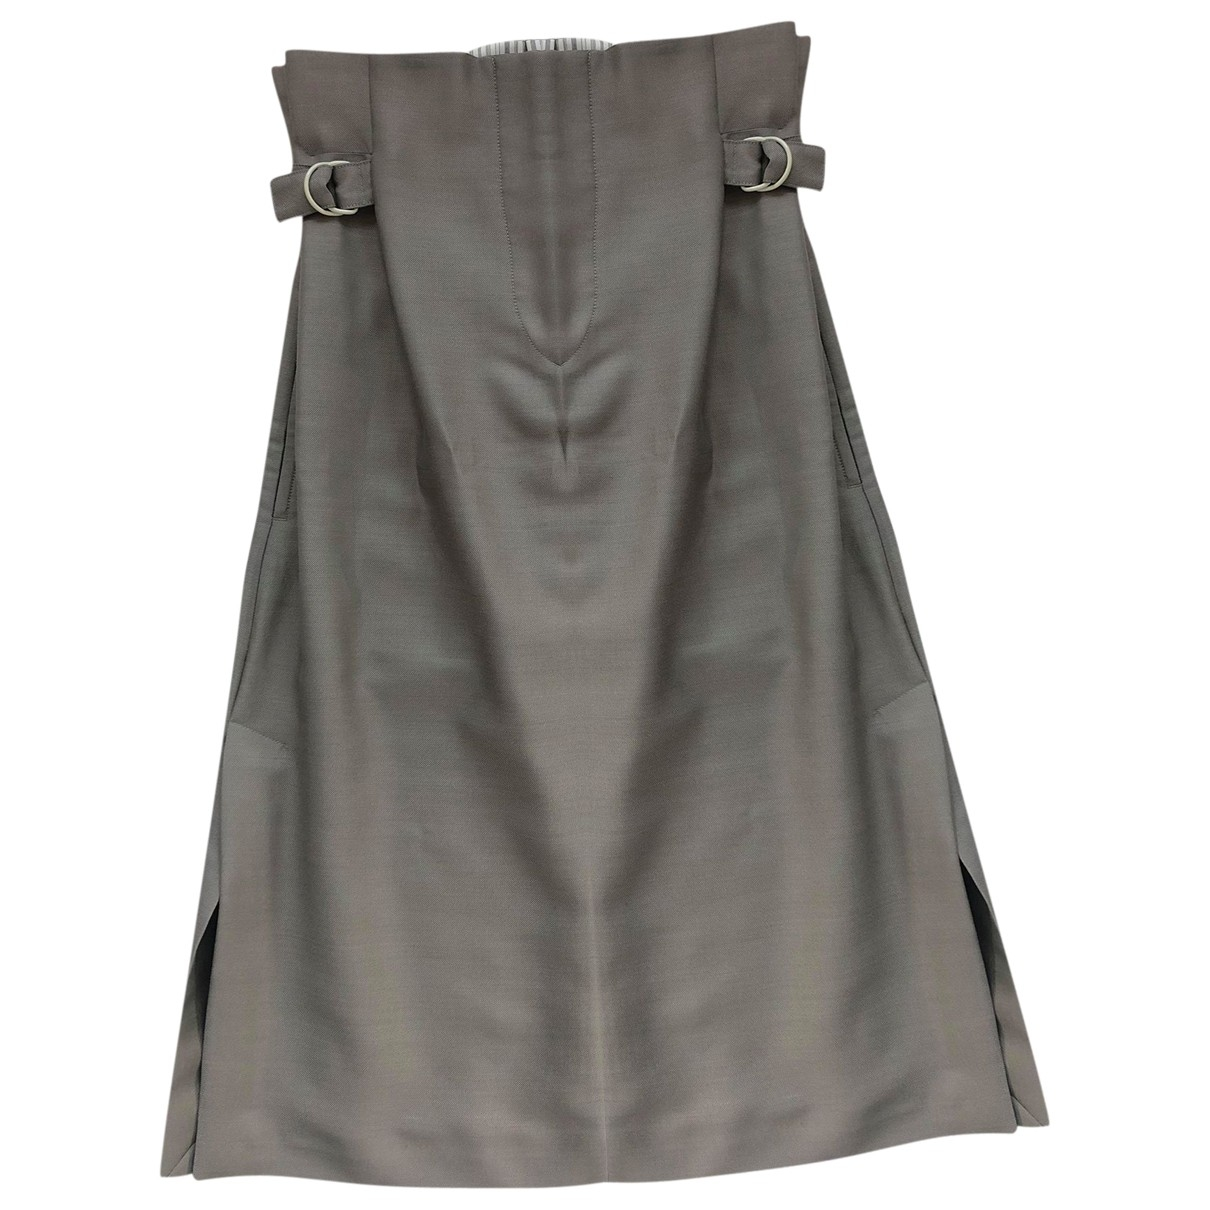 Acne Studios \N Grey Wool skirt for Women 34 FR